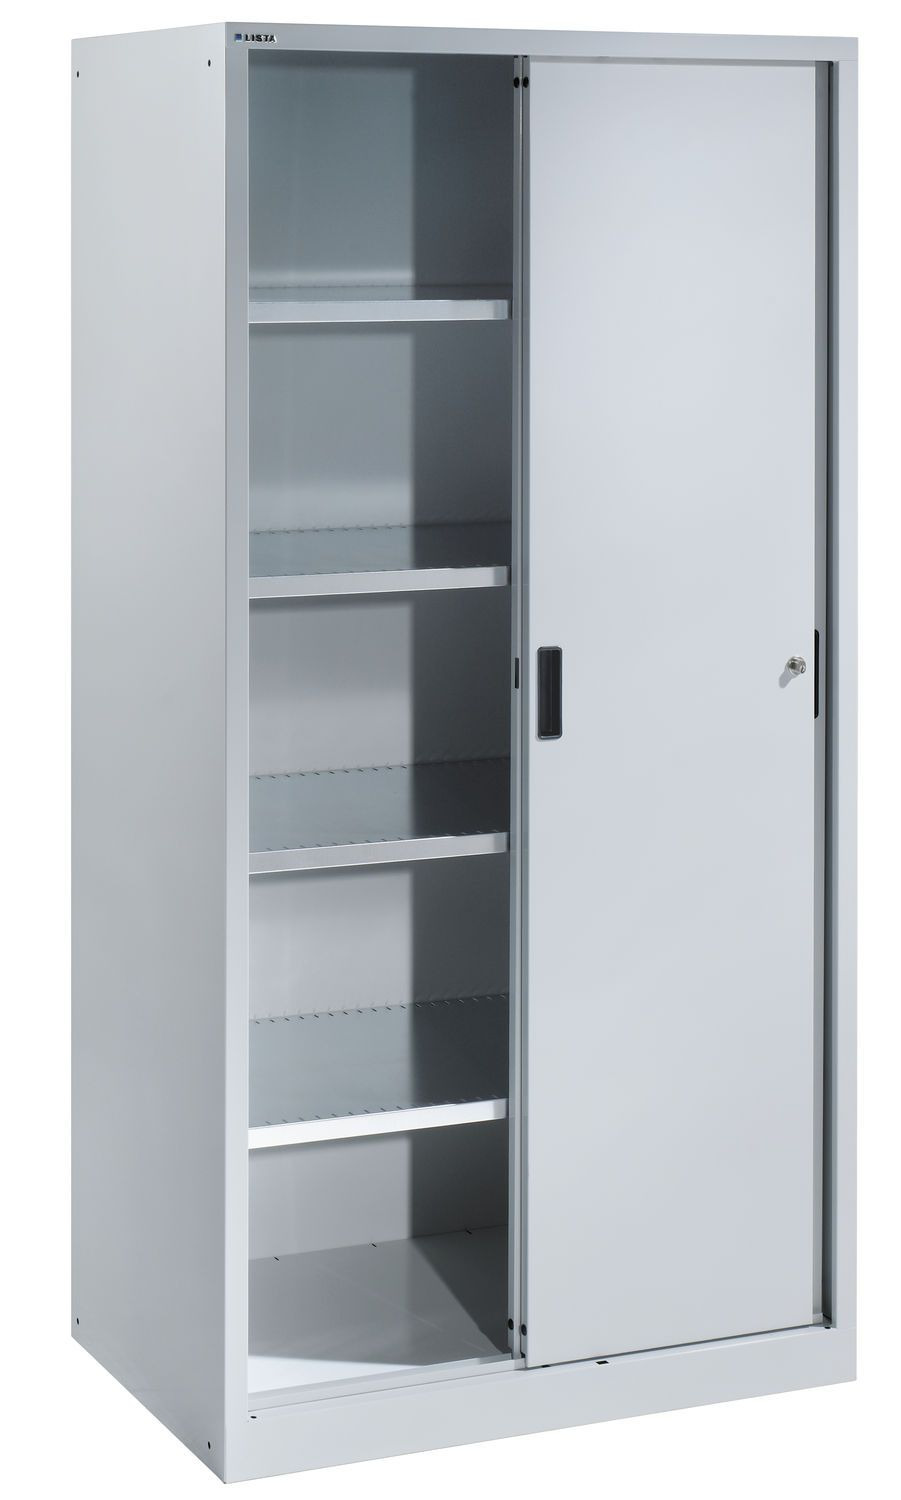 Metal Cabinet with Doors Lovely Awe Inspiring Storage Cabinets with Doors Also Adjustable